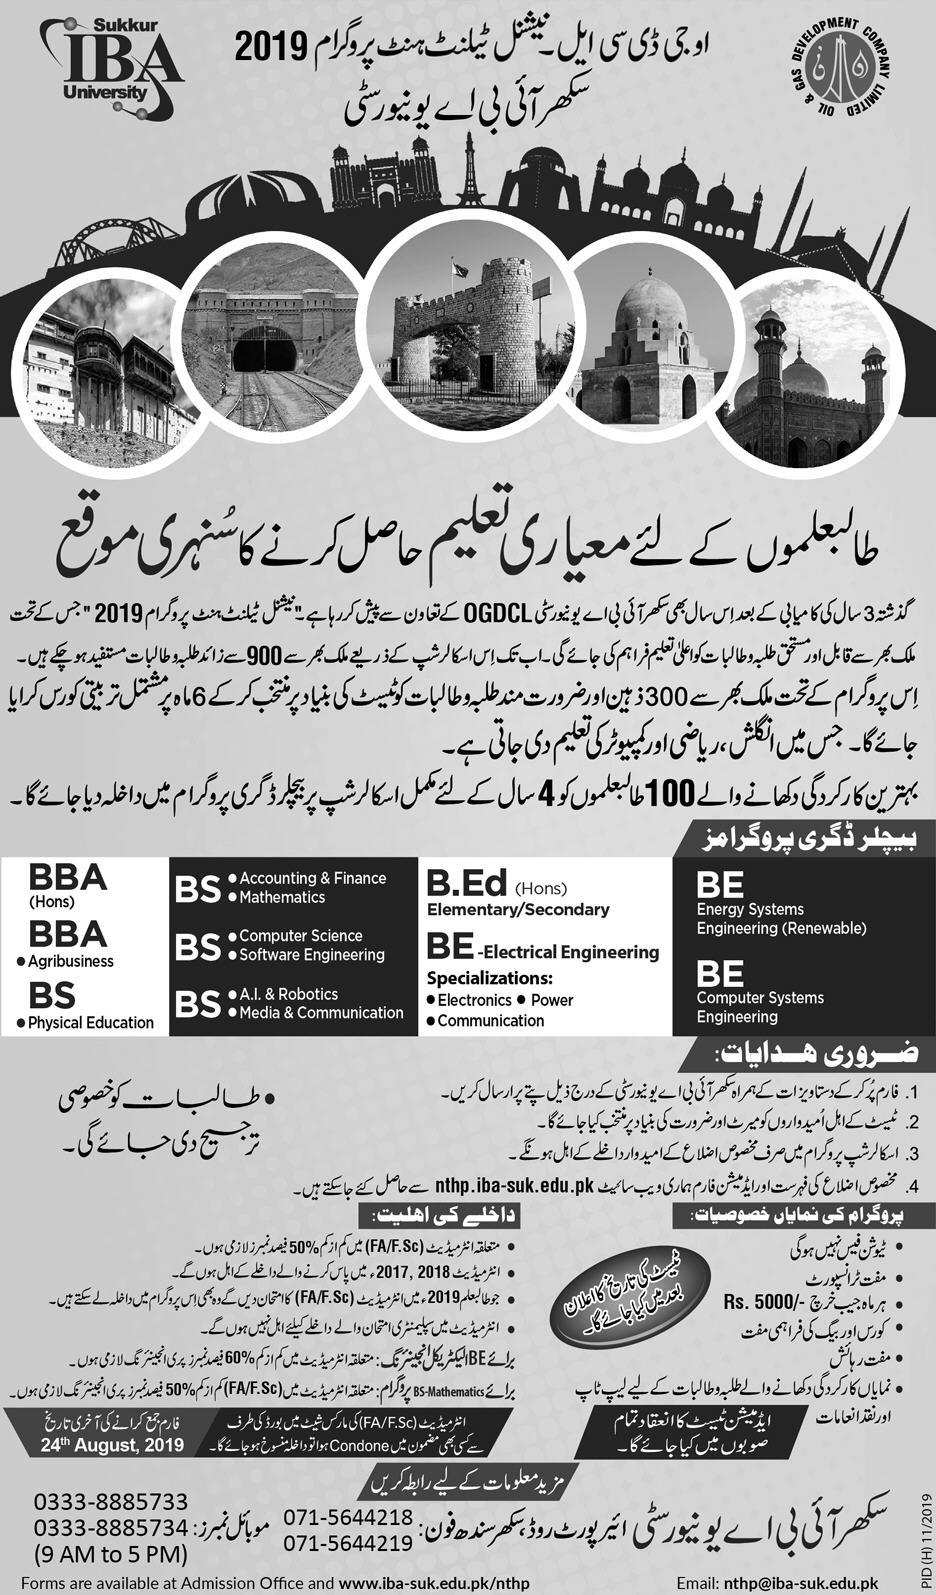 IBA Sukkur OGDCL National Talent Hunt Program 2019